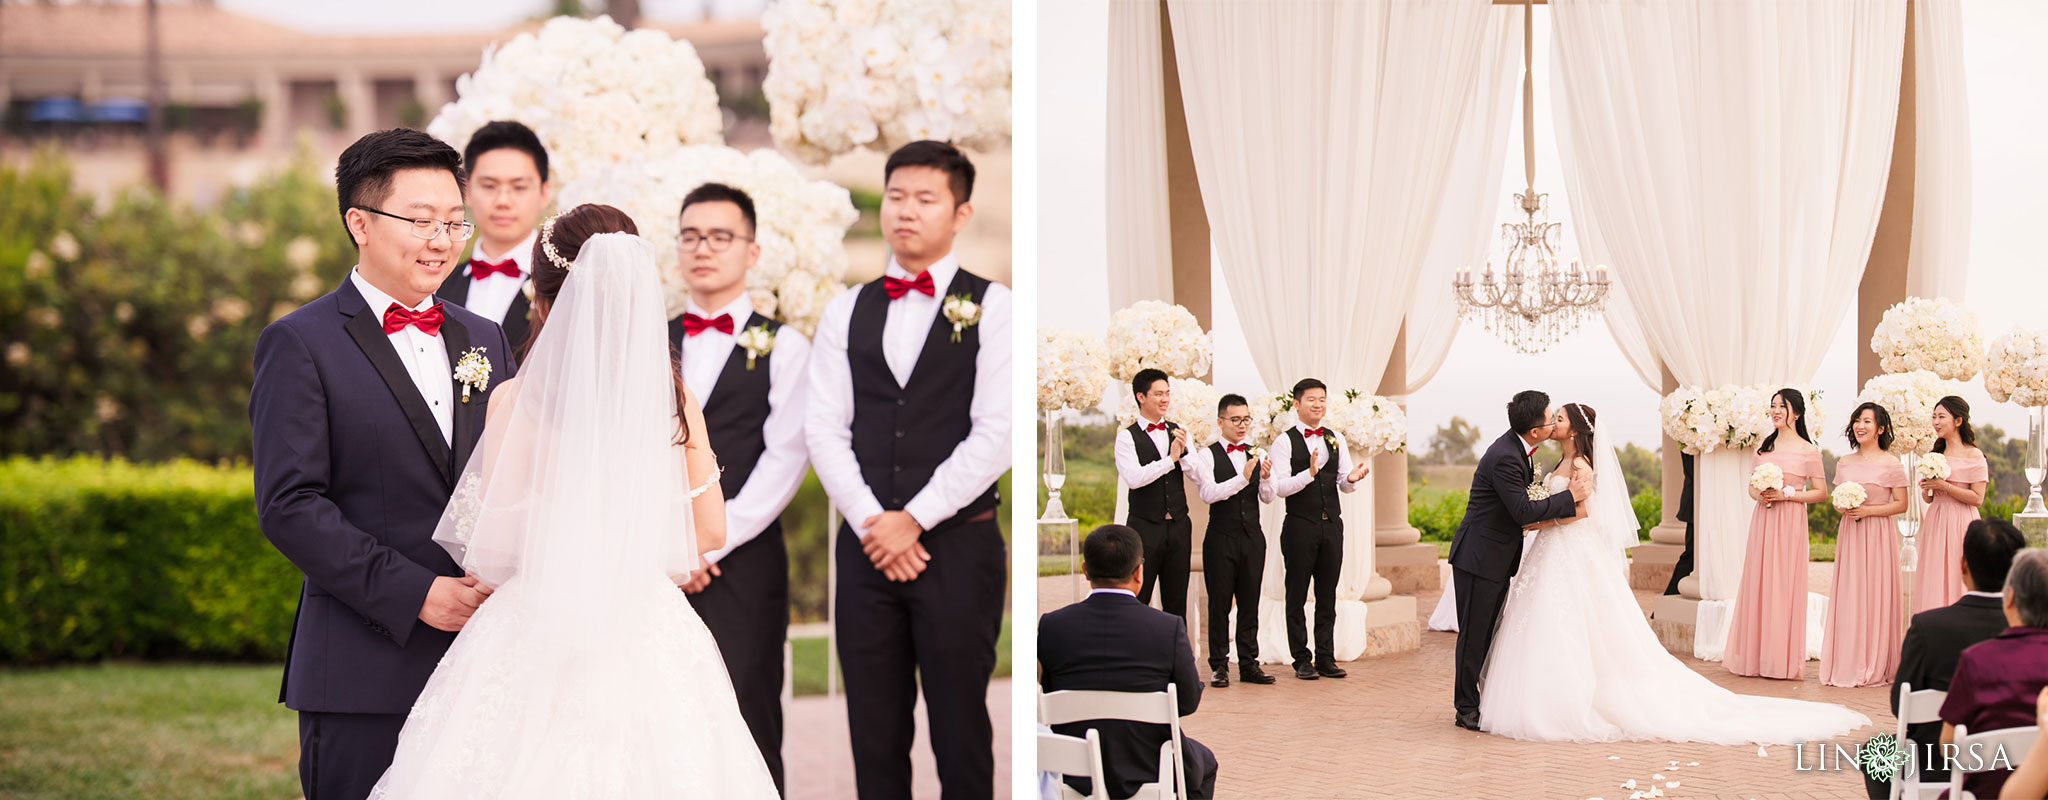 31 pelican hill orange county chinese wedding photography